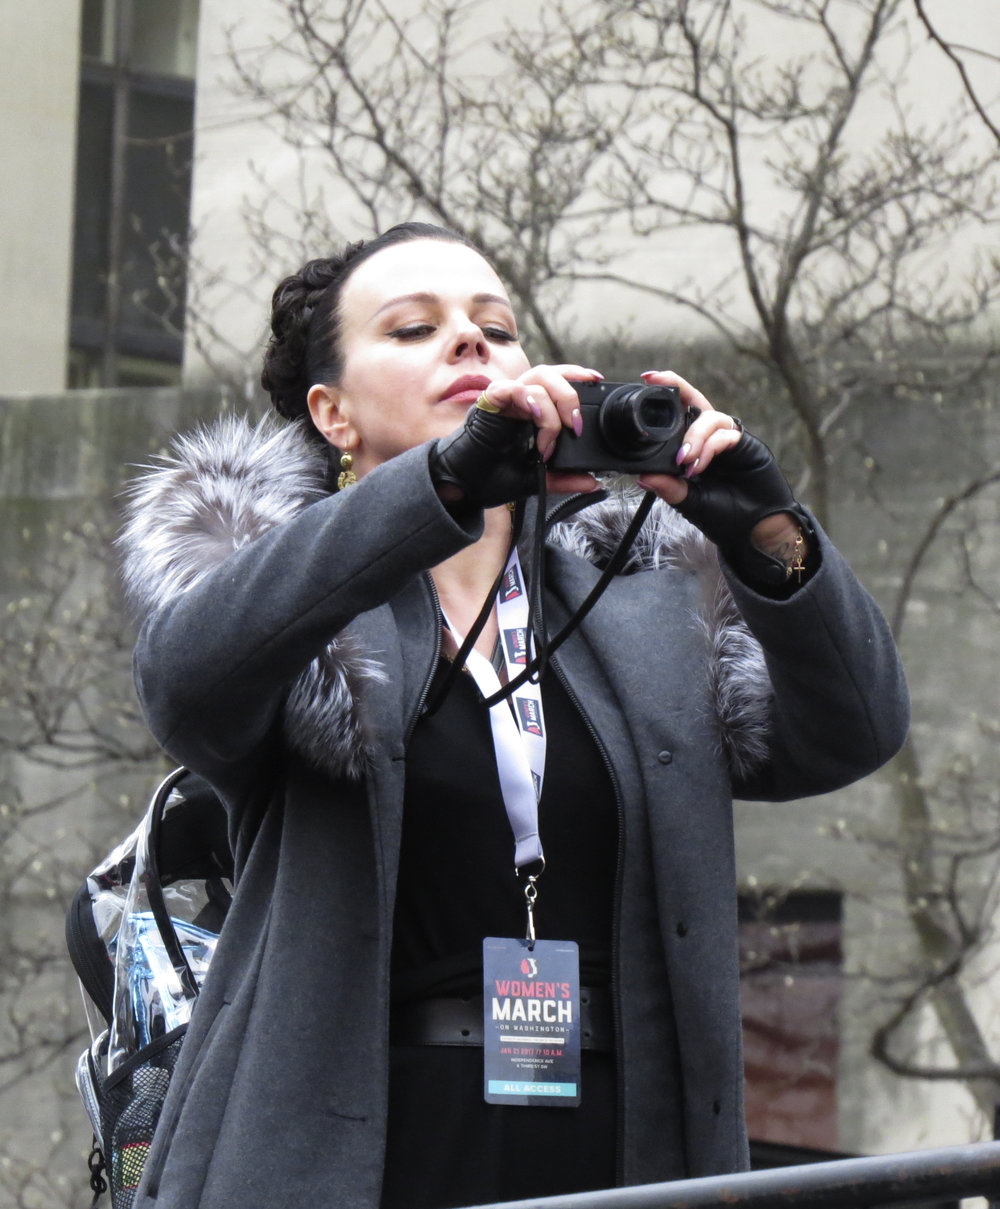 Debi Mazar at Women's March on Washington